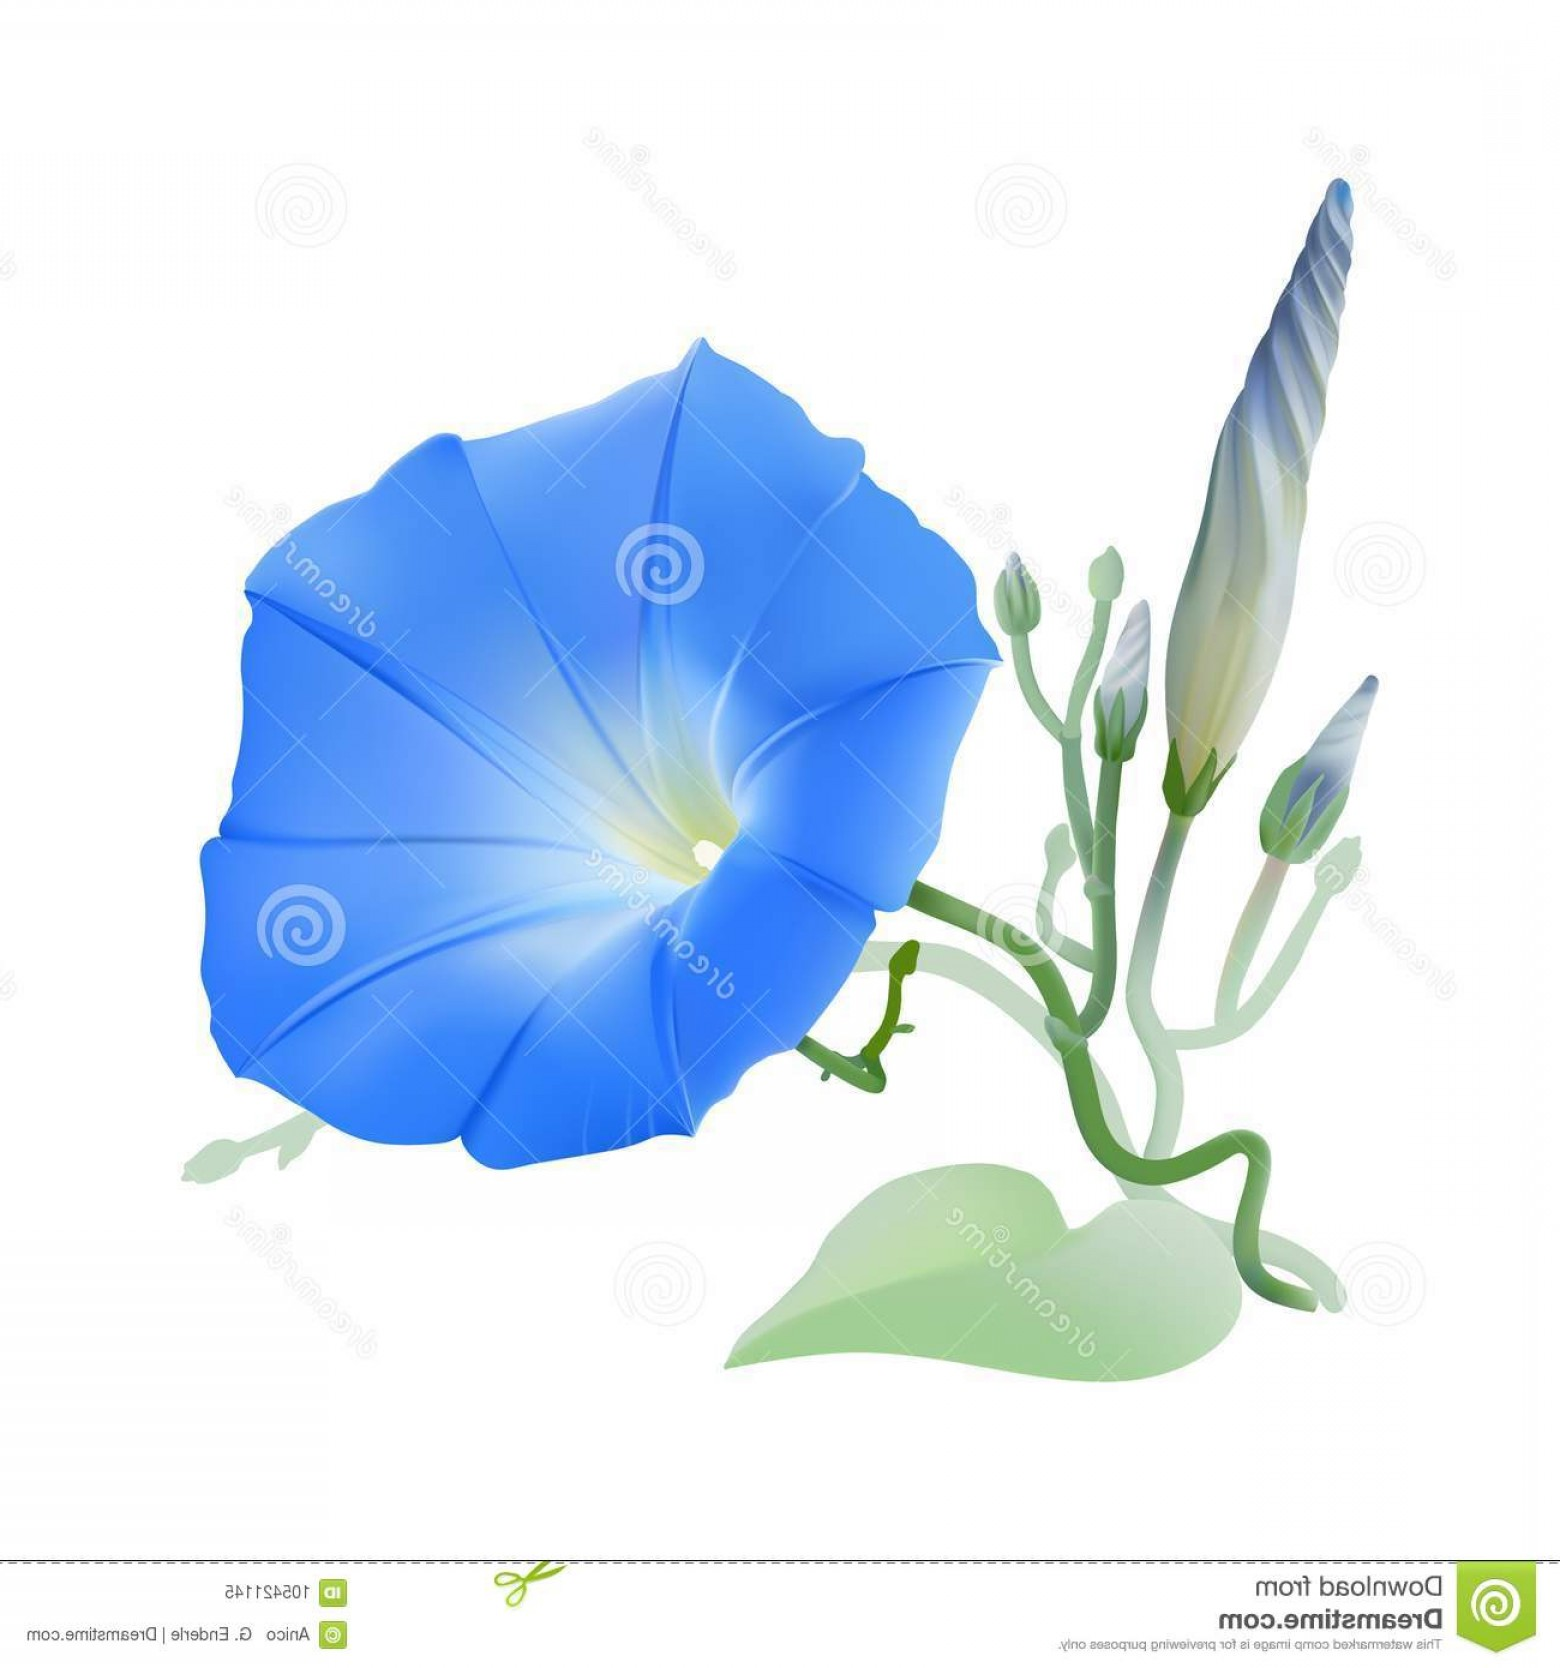 Morning Glory Transparent Vector: Flower Buds Twisted Vines Ipomoea Tricolor Hand Drawn Vector Illustration Transparent Background Morning Glory Heavenly Image